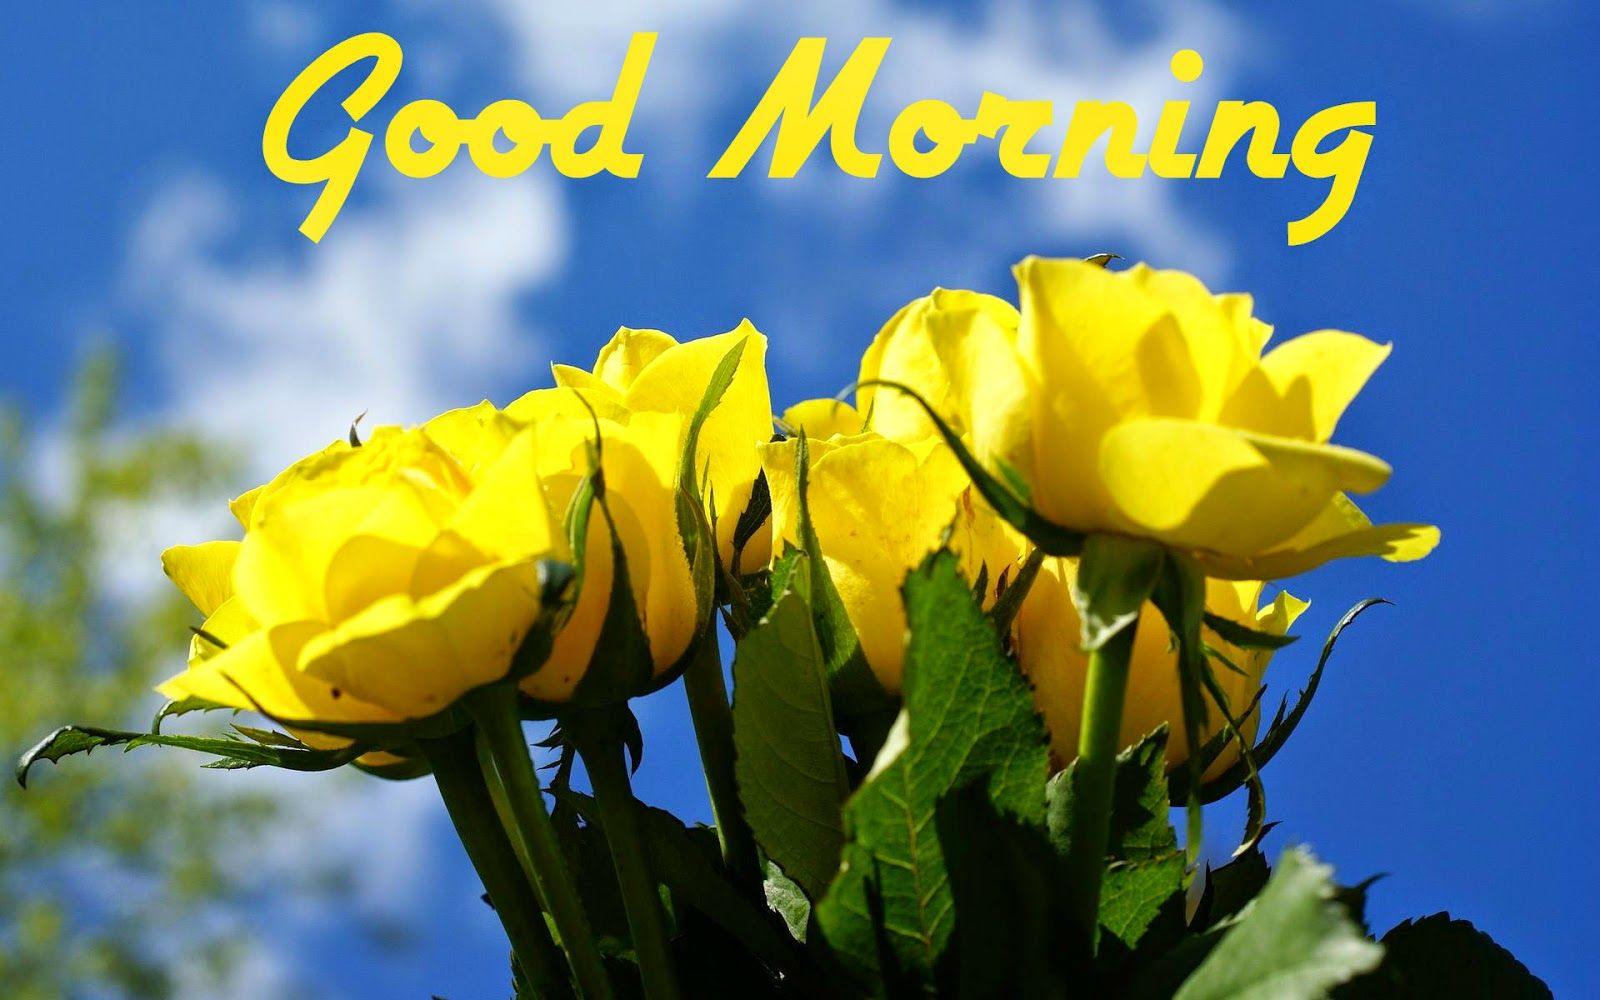 Beautiful Good Morning Greetings Coffee Cup Picture Good